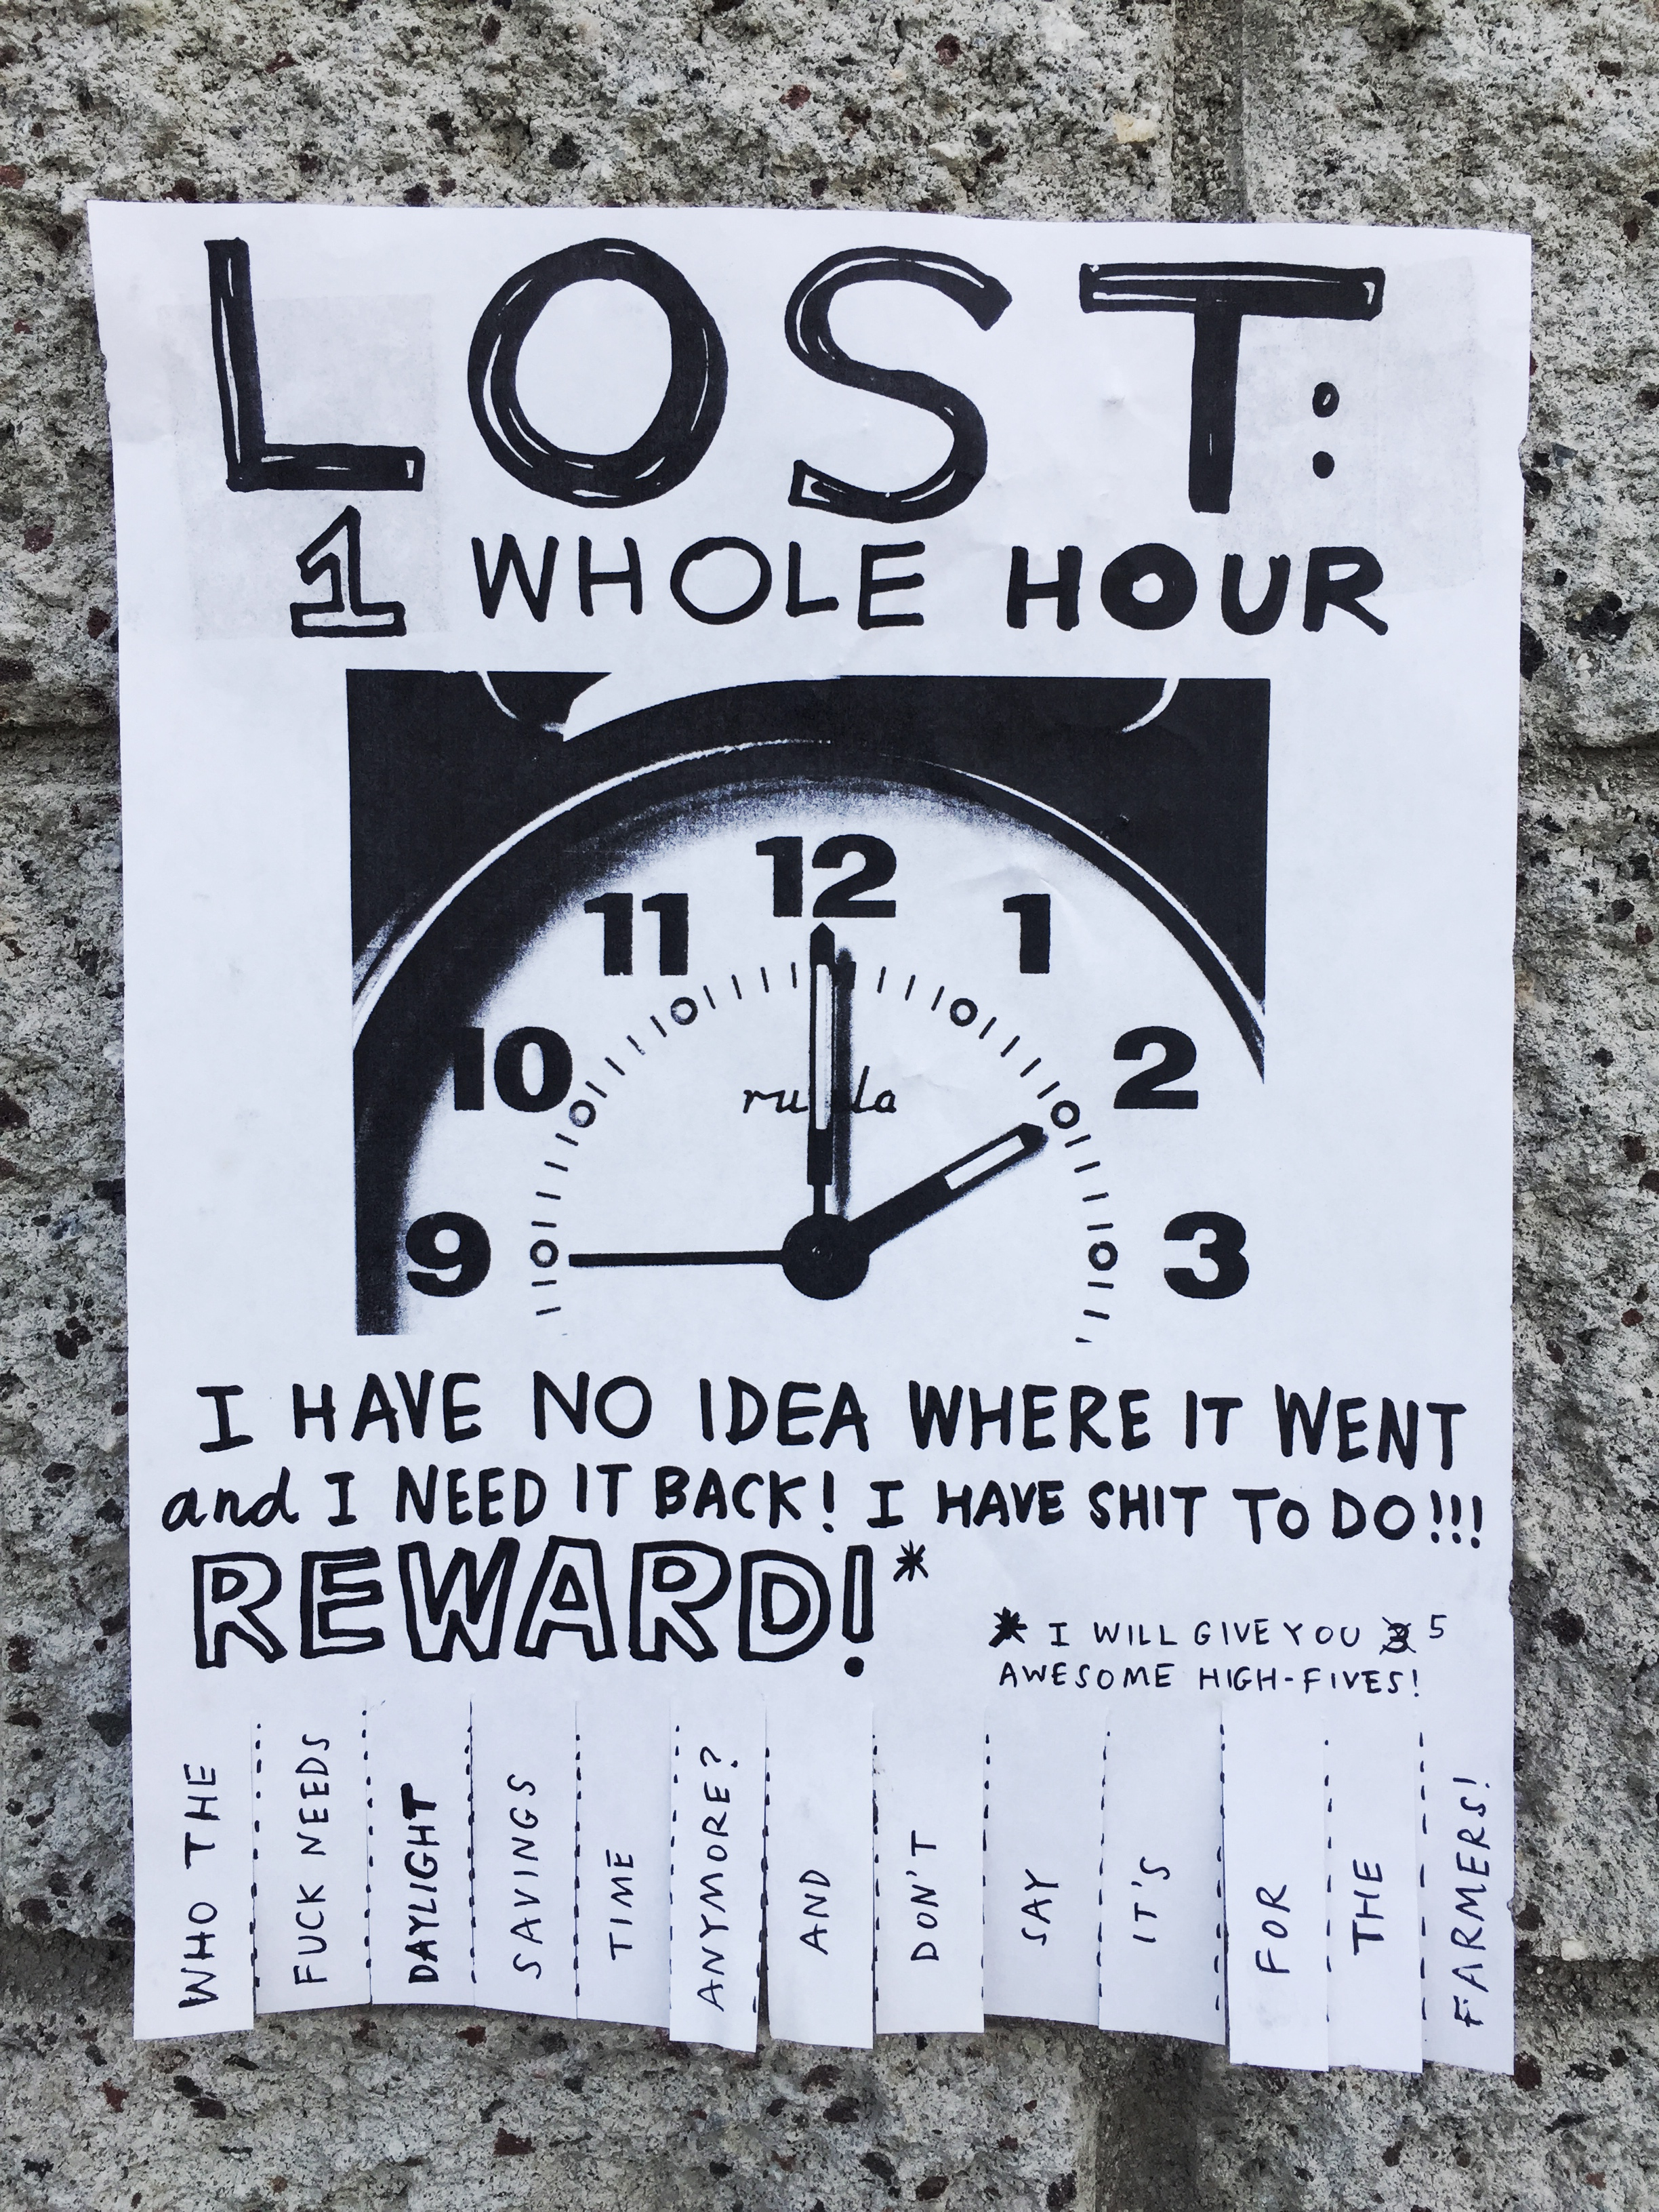 LOST: 1 WHOLE HOUR